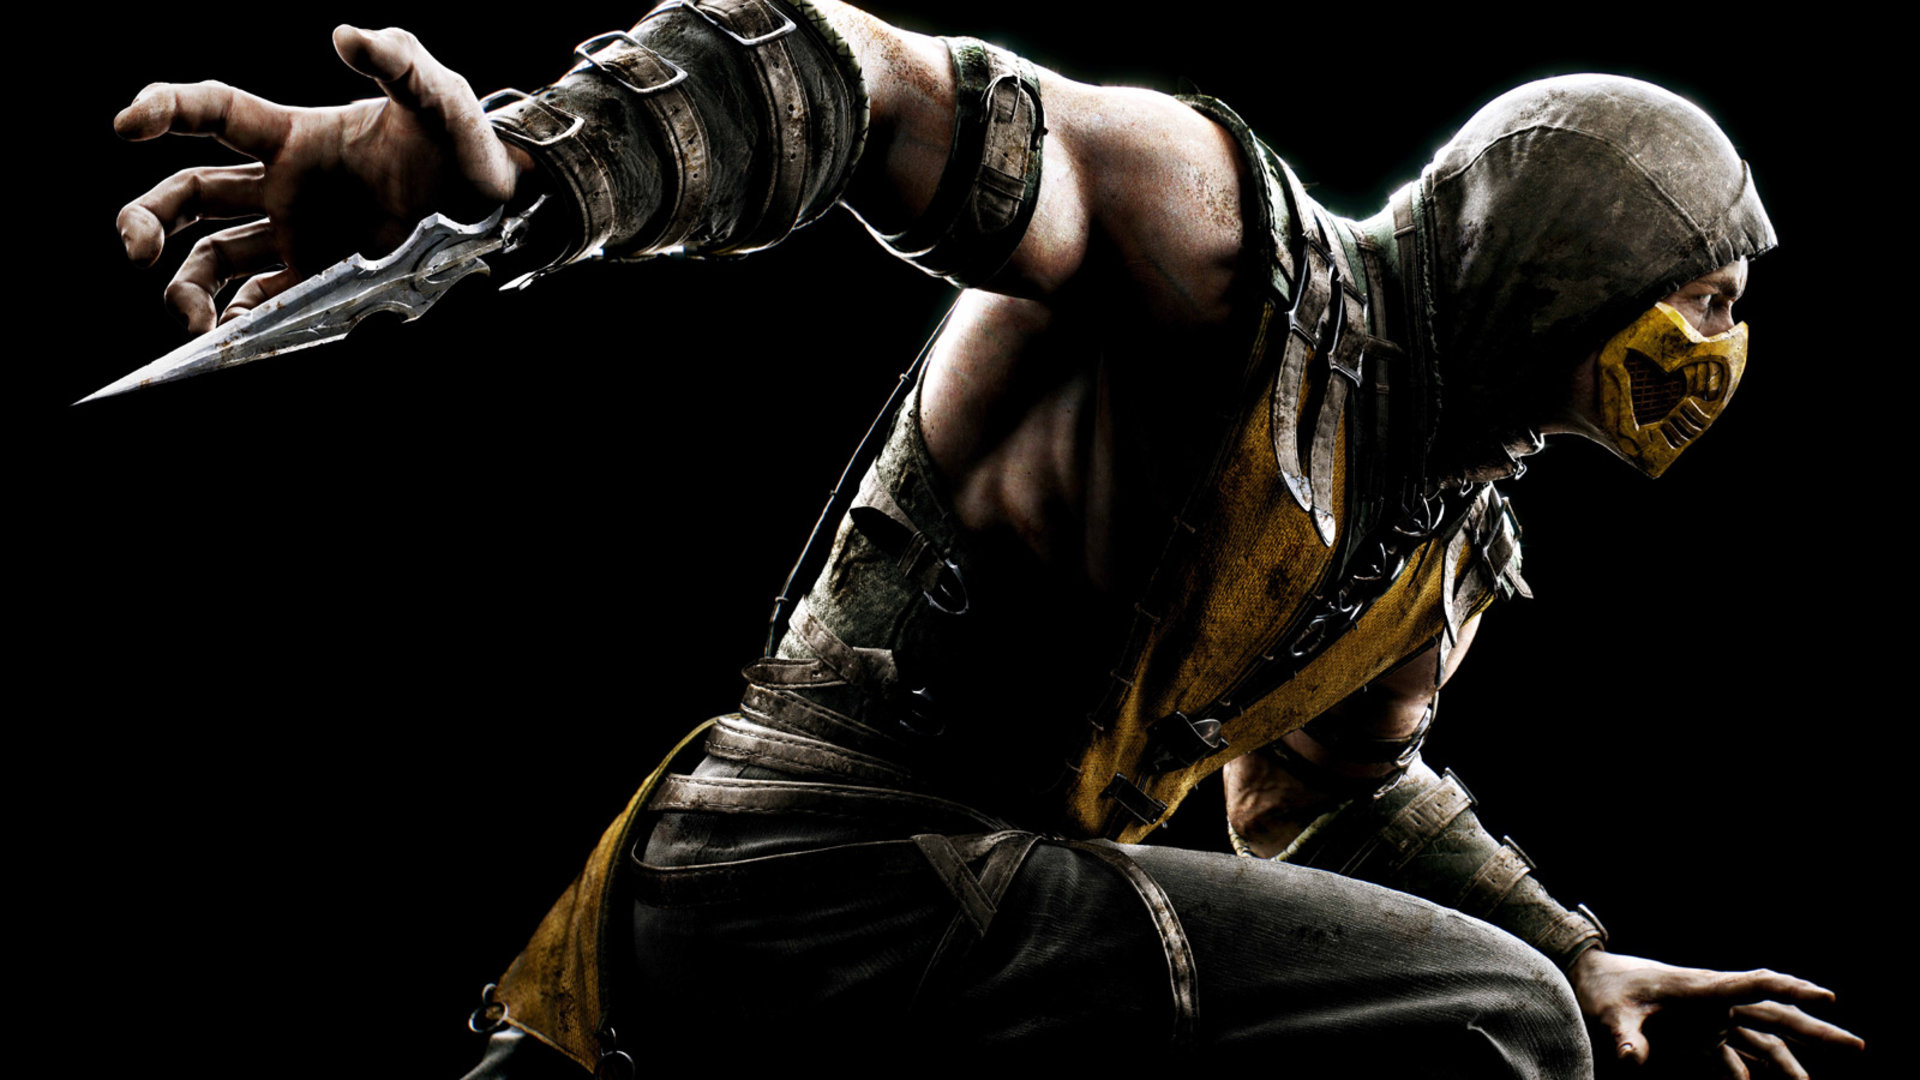 MortalKombatX_Scorpion_Sidewinder.0_cinema_1920.0.jpg